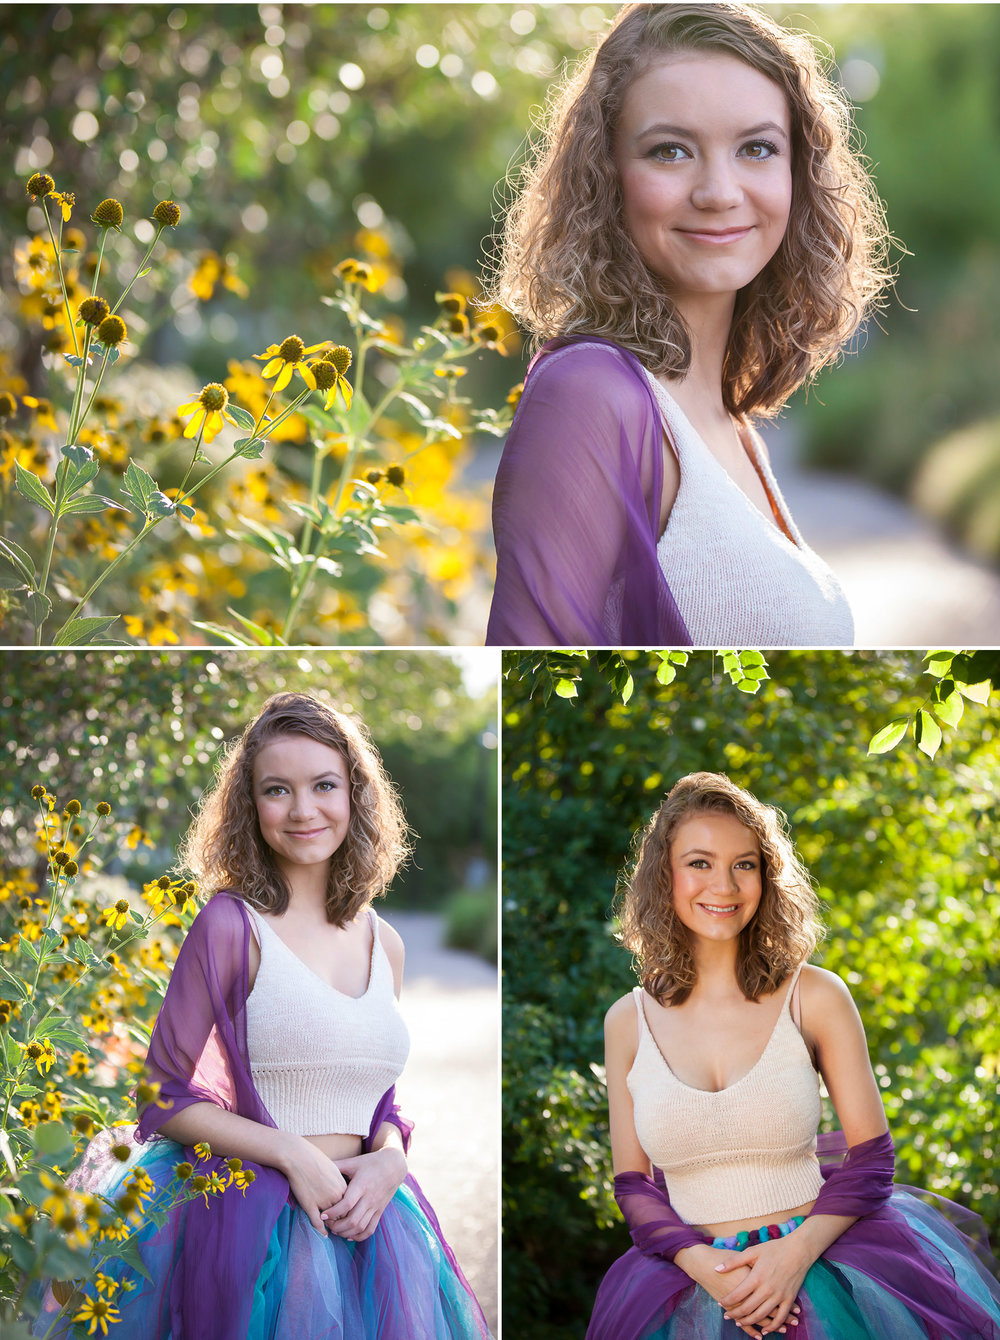 Senior Pictures in Denver Botanic Gardens, photographer Jennifer Koskinen